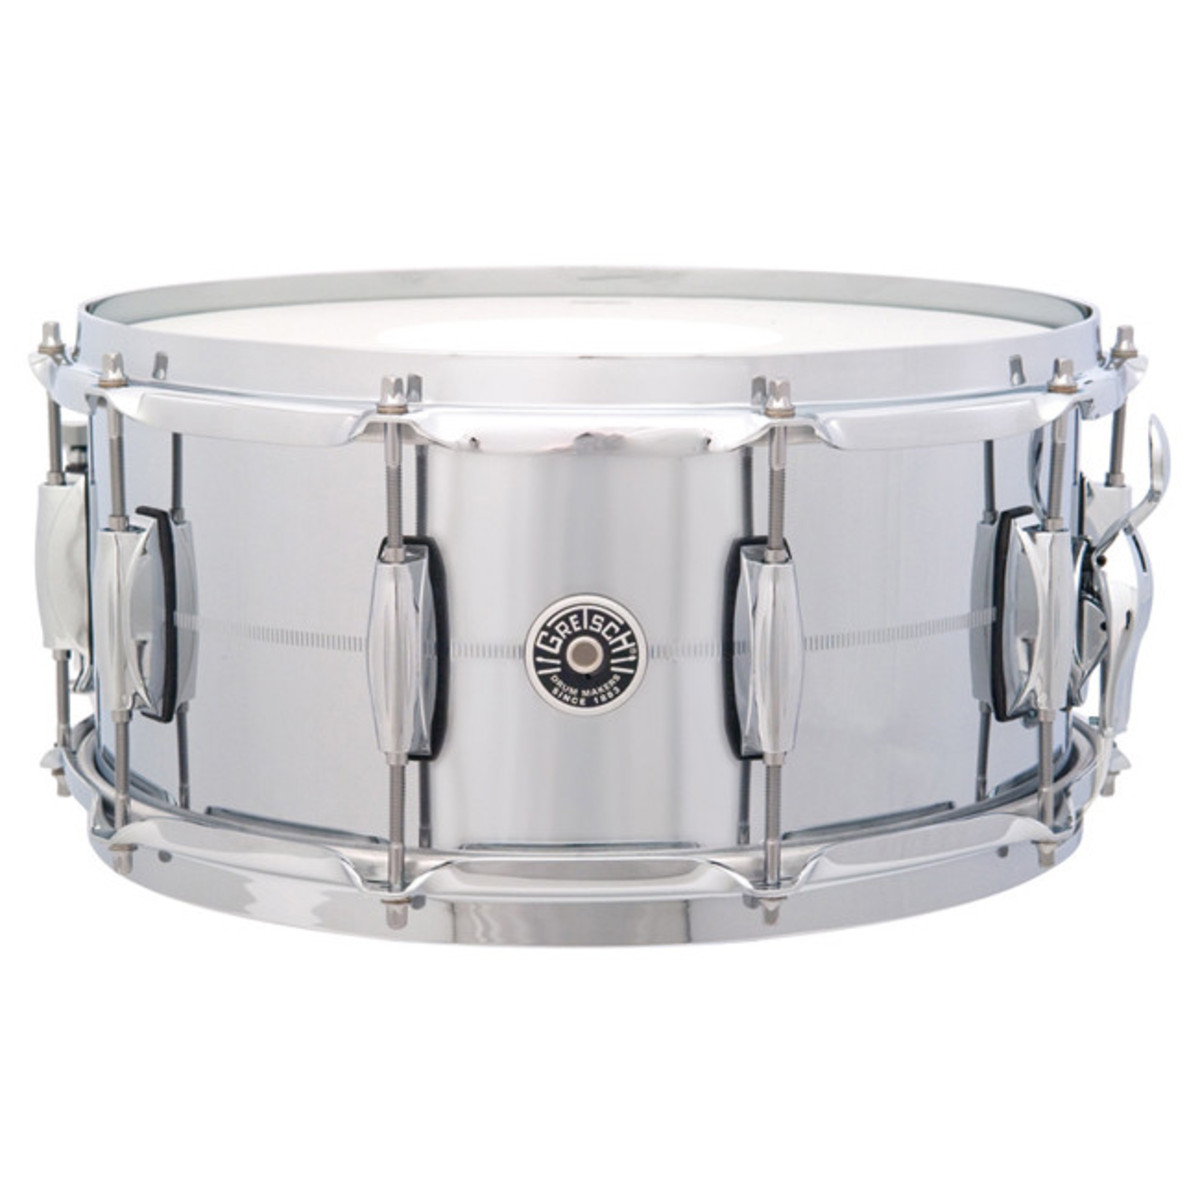 Gretsch Drums Brooklyn 14\'\' x 6.5\'\' Snare Drum, Chrome Over Brass at ...